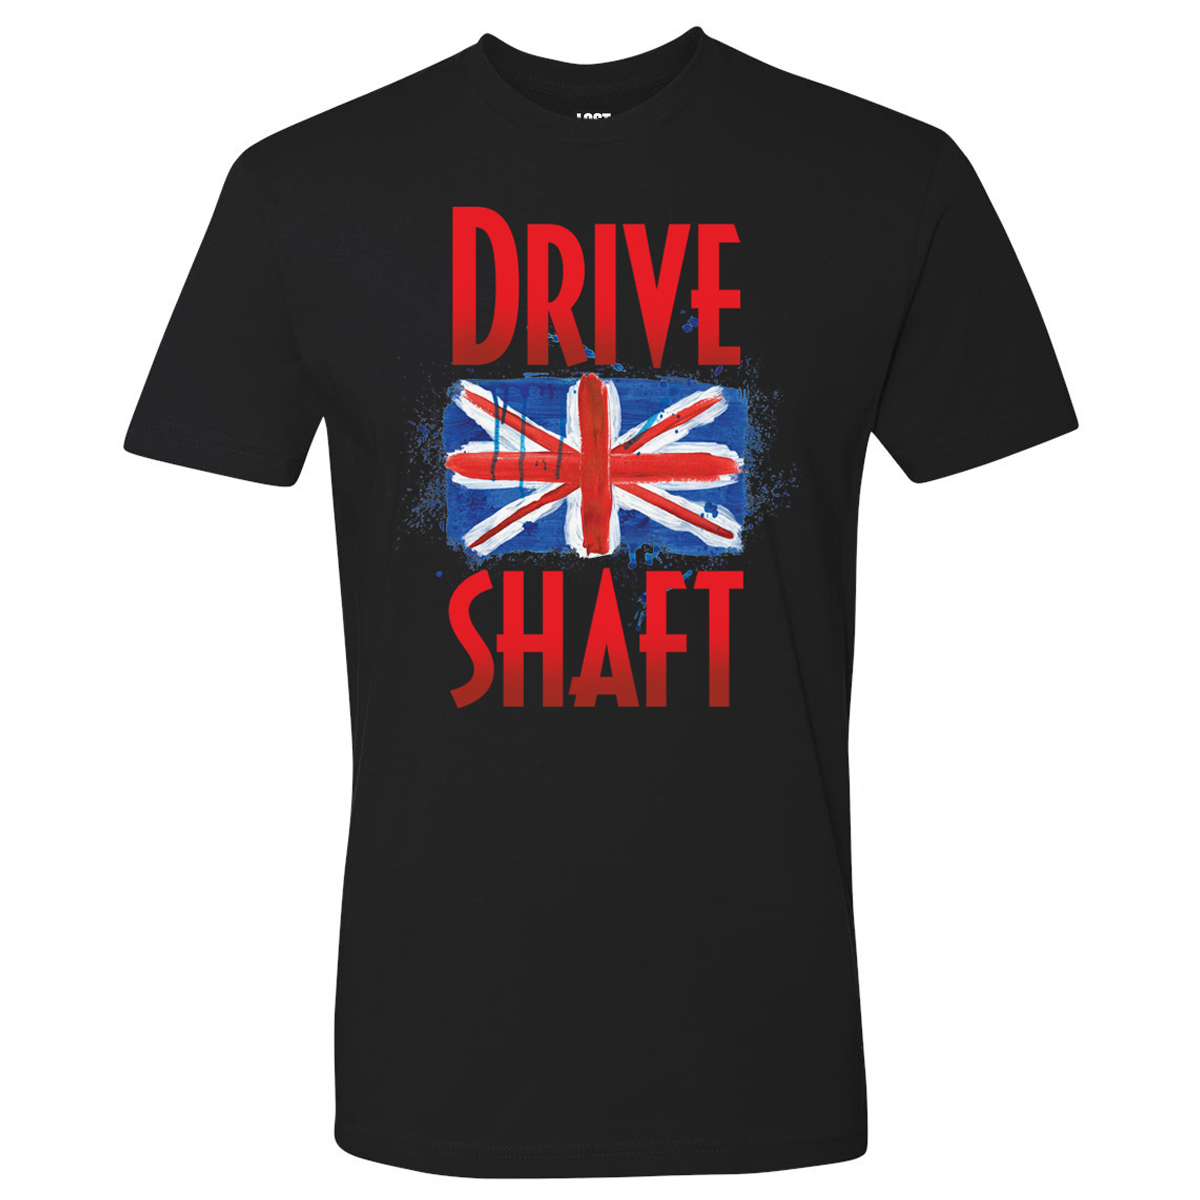 Lost Drive Shaft T-Shirt